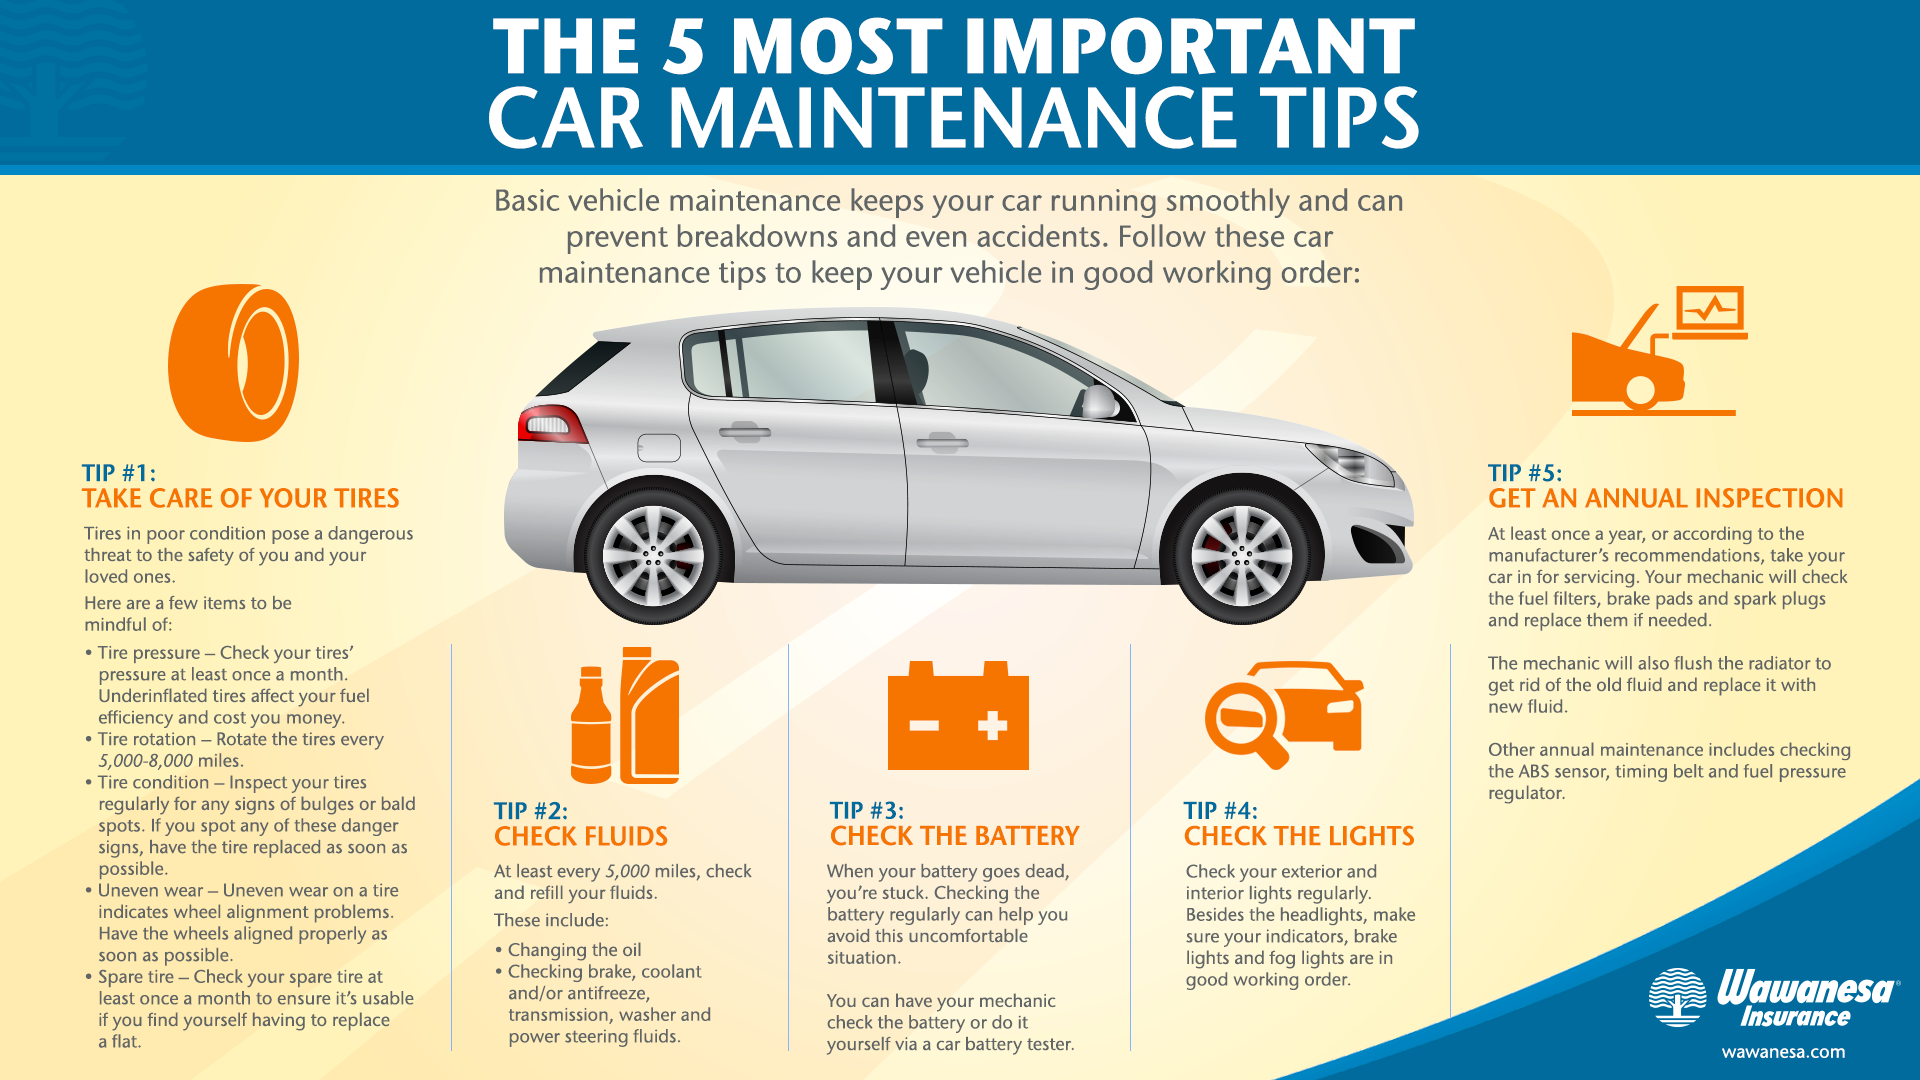 Car maintenance tips for your tires, lights, and more